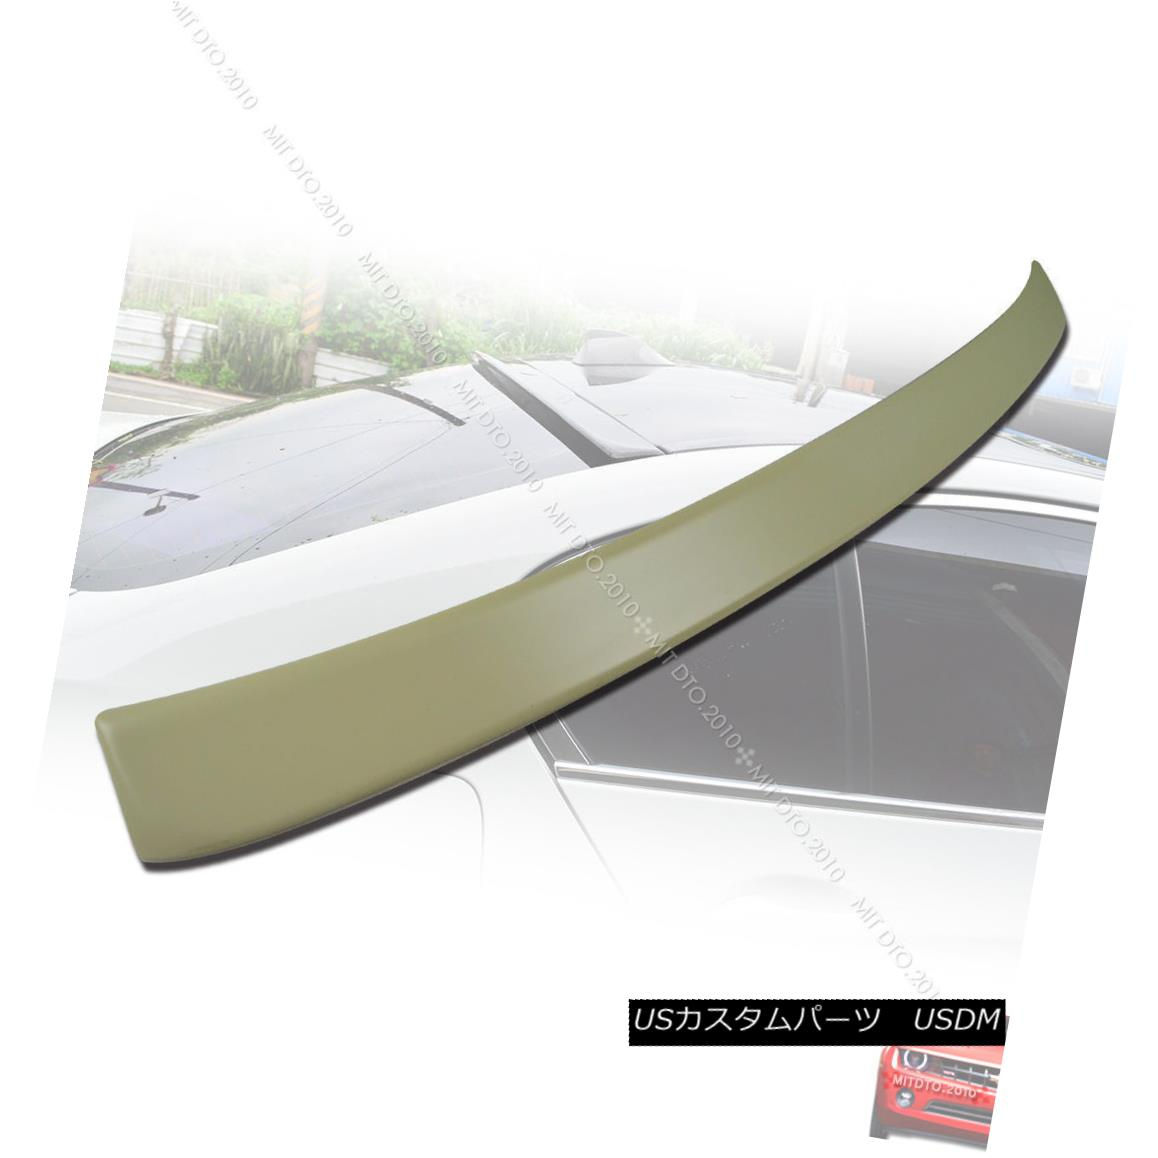 エアロパーツ BMW NEW F10 5-Series A Type 4DR Sedan Roof Spoiler ABS 2010+ BMW NEW F10 5シリーズA型4DRセダンルーフスポイラーABS 2010+